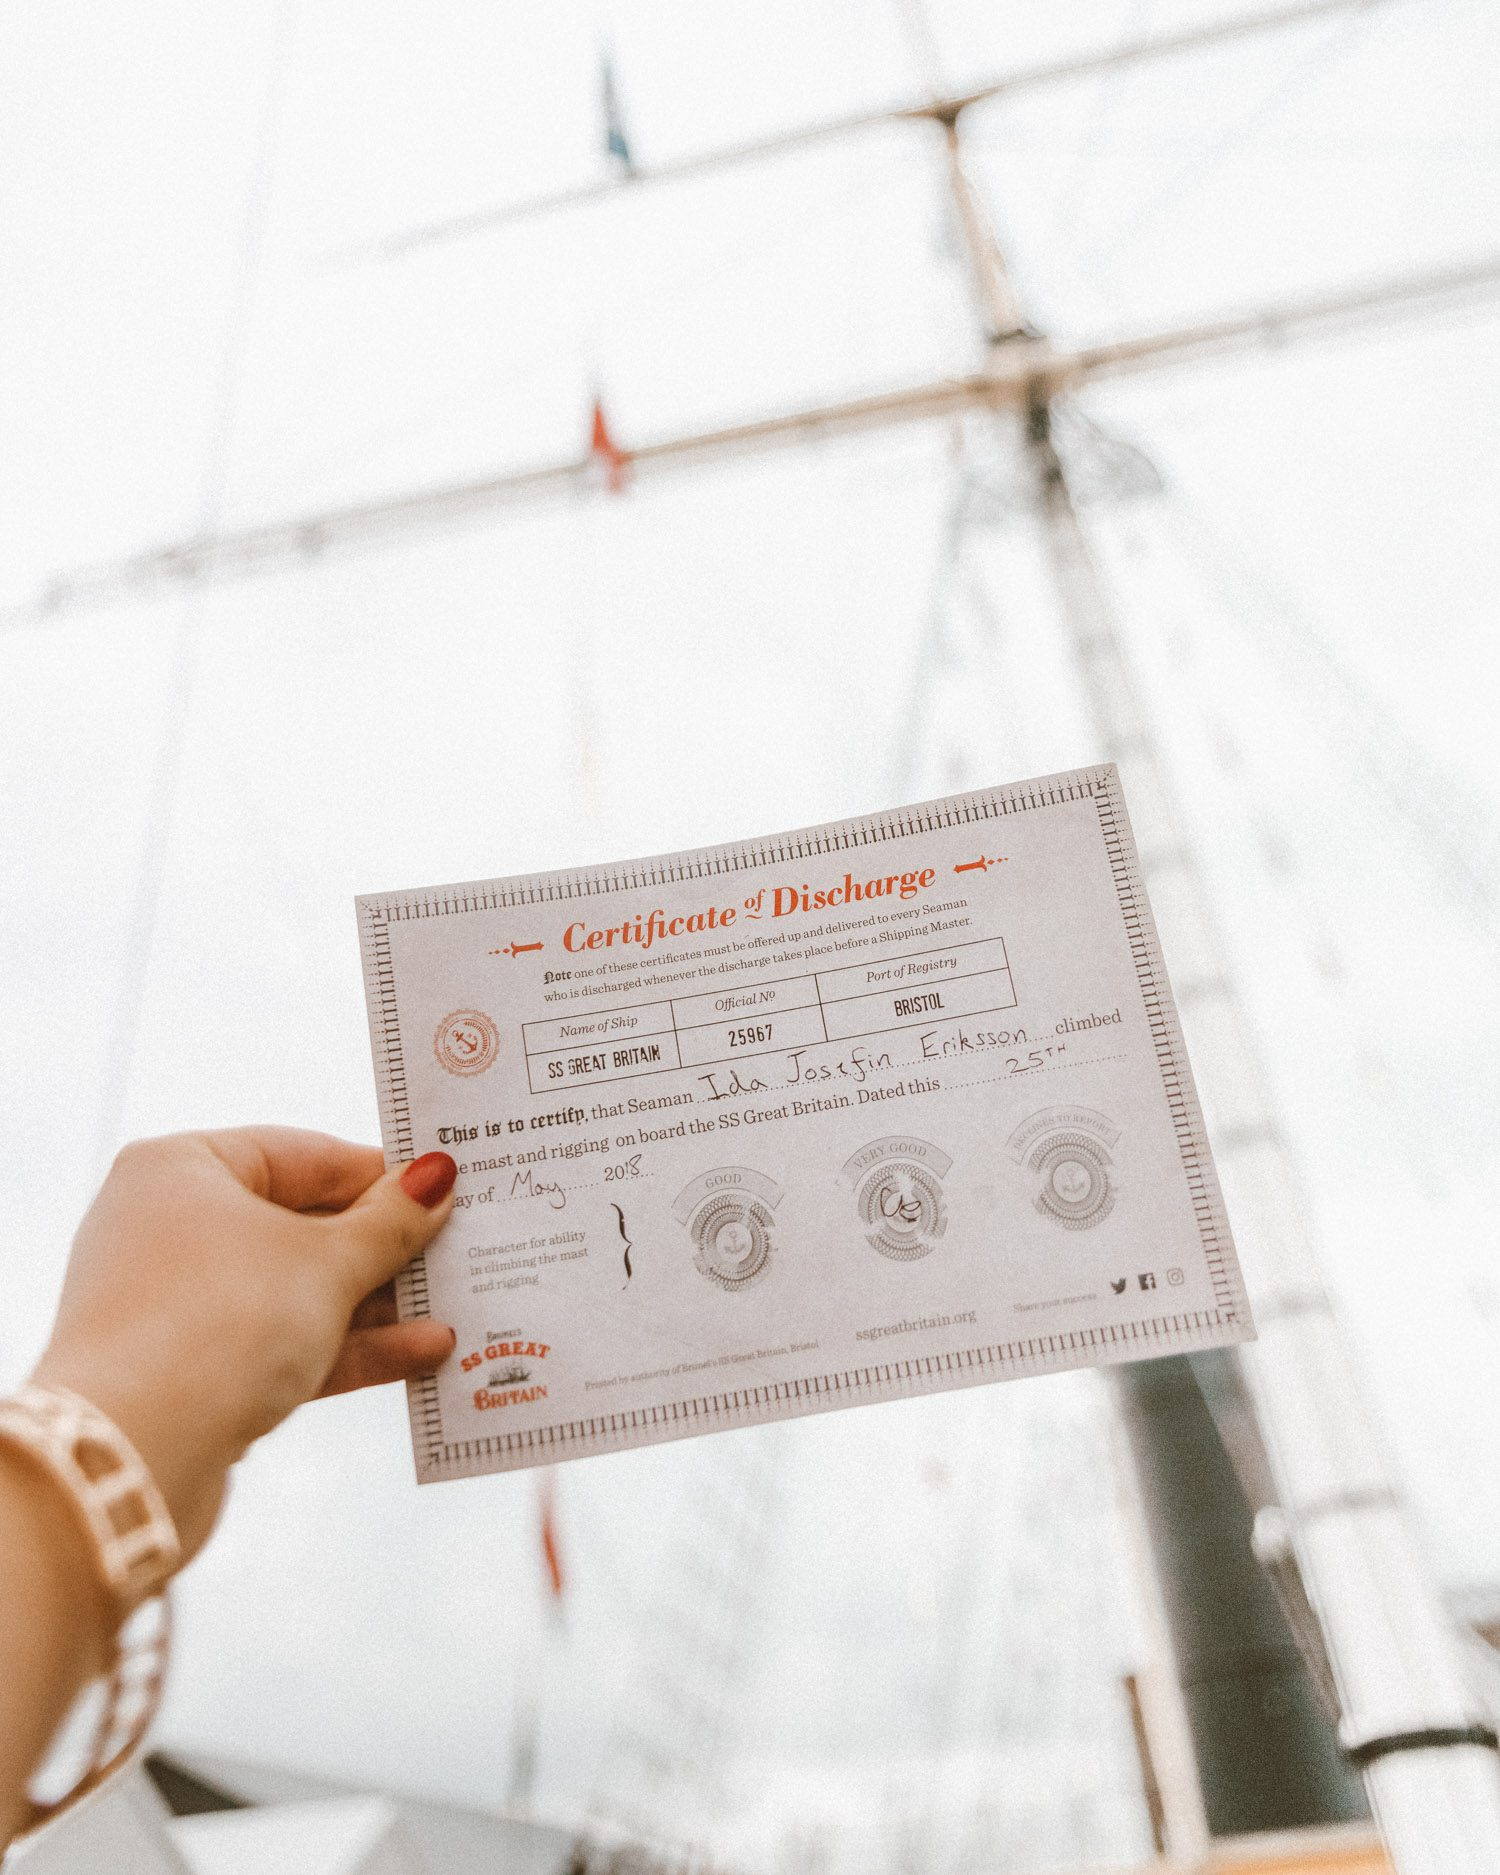 Certificate of Discharge | SS Great Britain